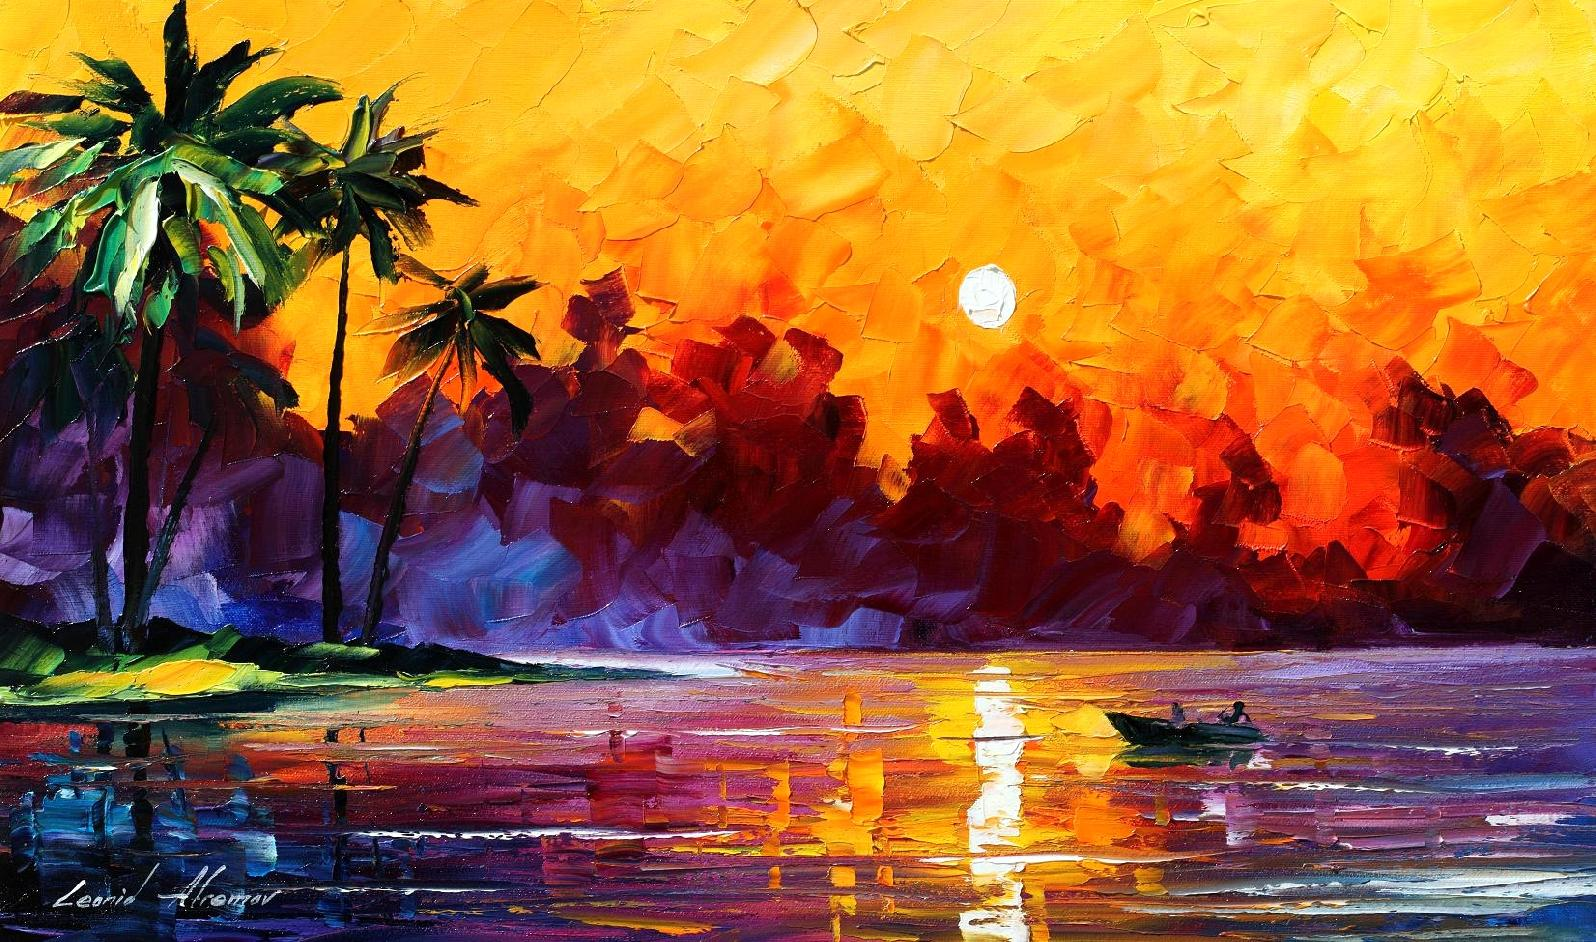 How To Painting Art Punta Allen Tulum Mexico Palette Knife Oil Painting On